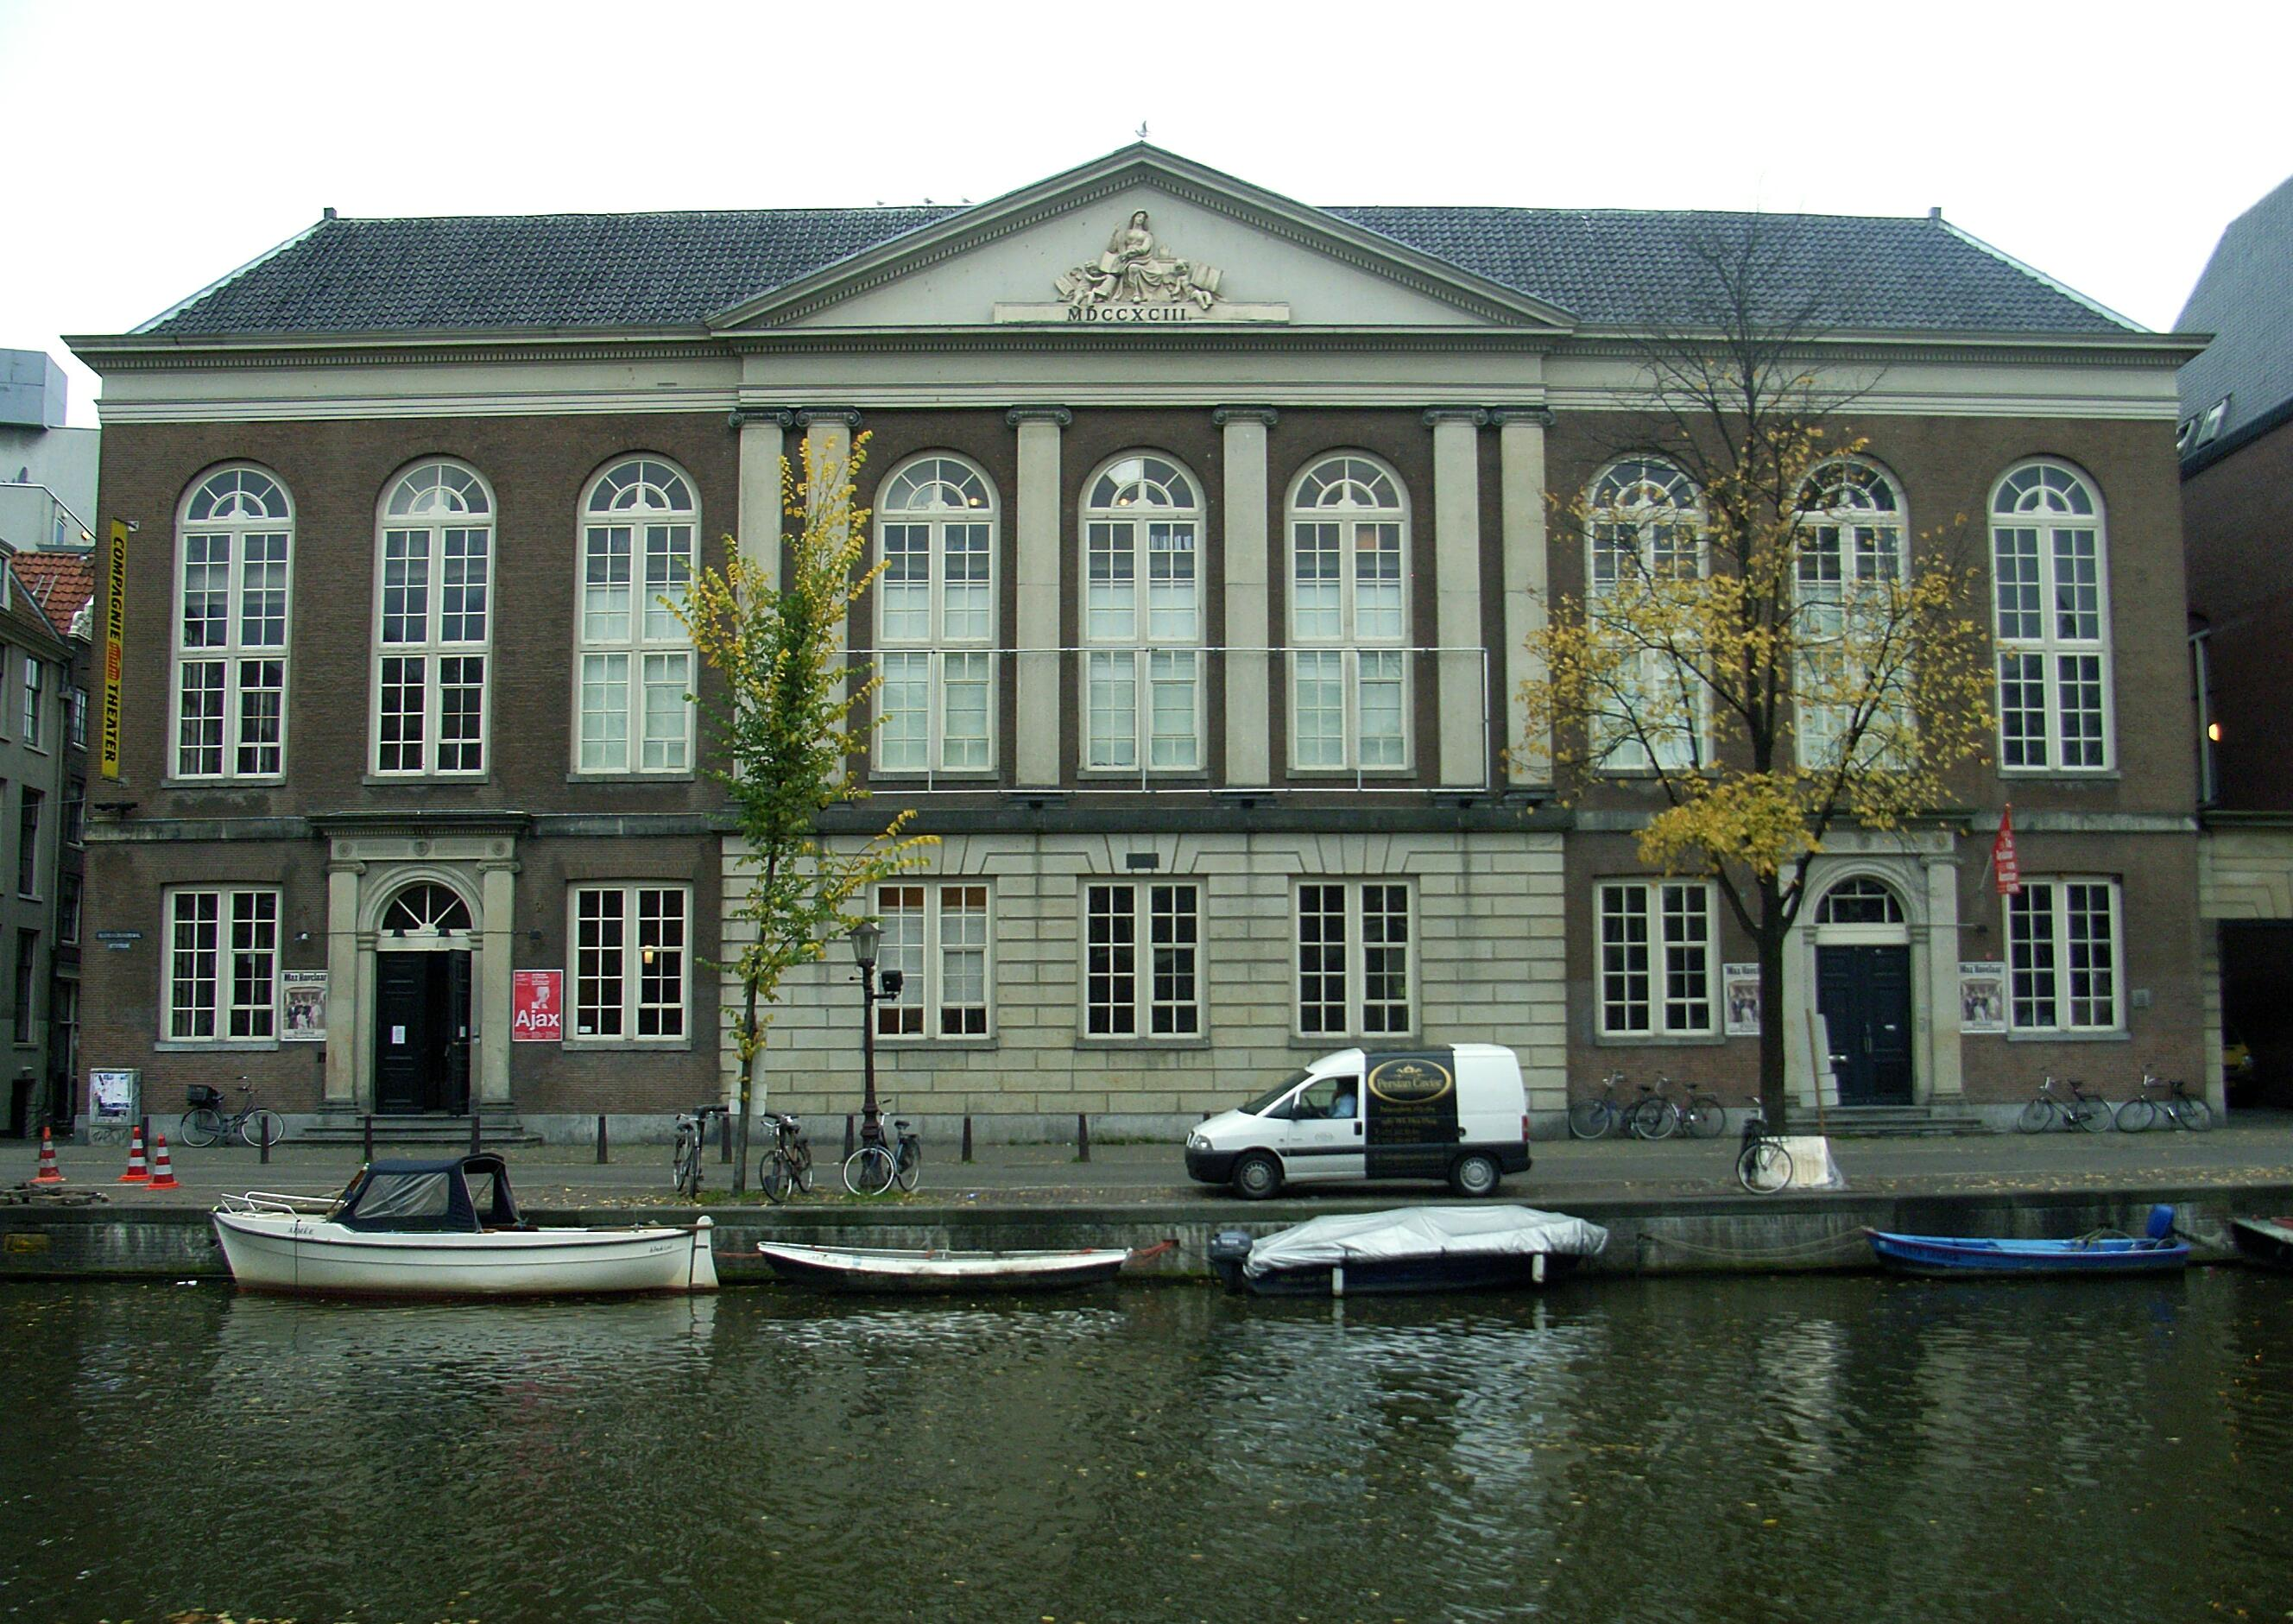 Compagnietheater. Photo: https://commons.wikimedia.org/wiki/User:Manecke